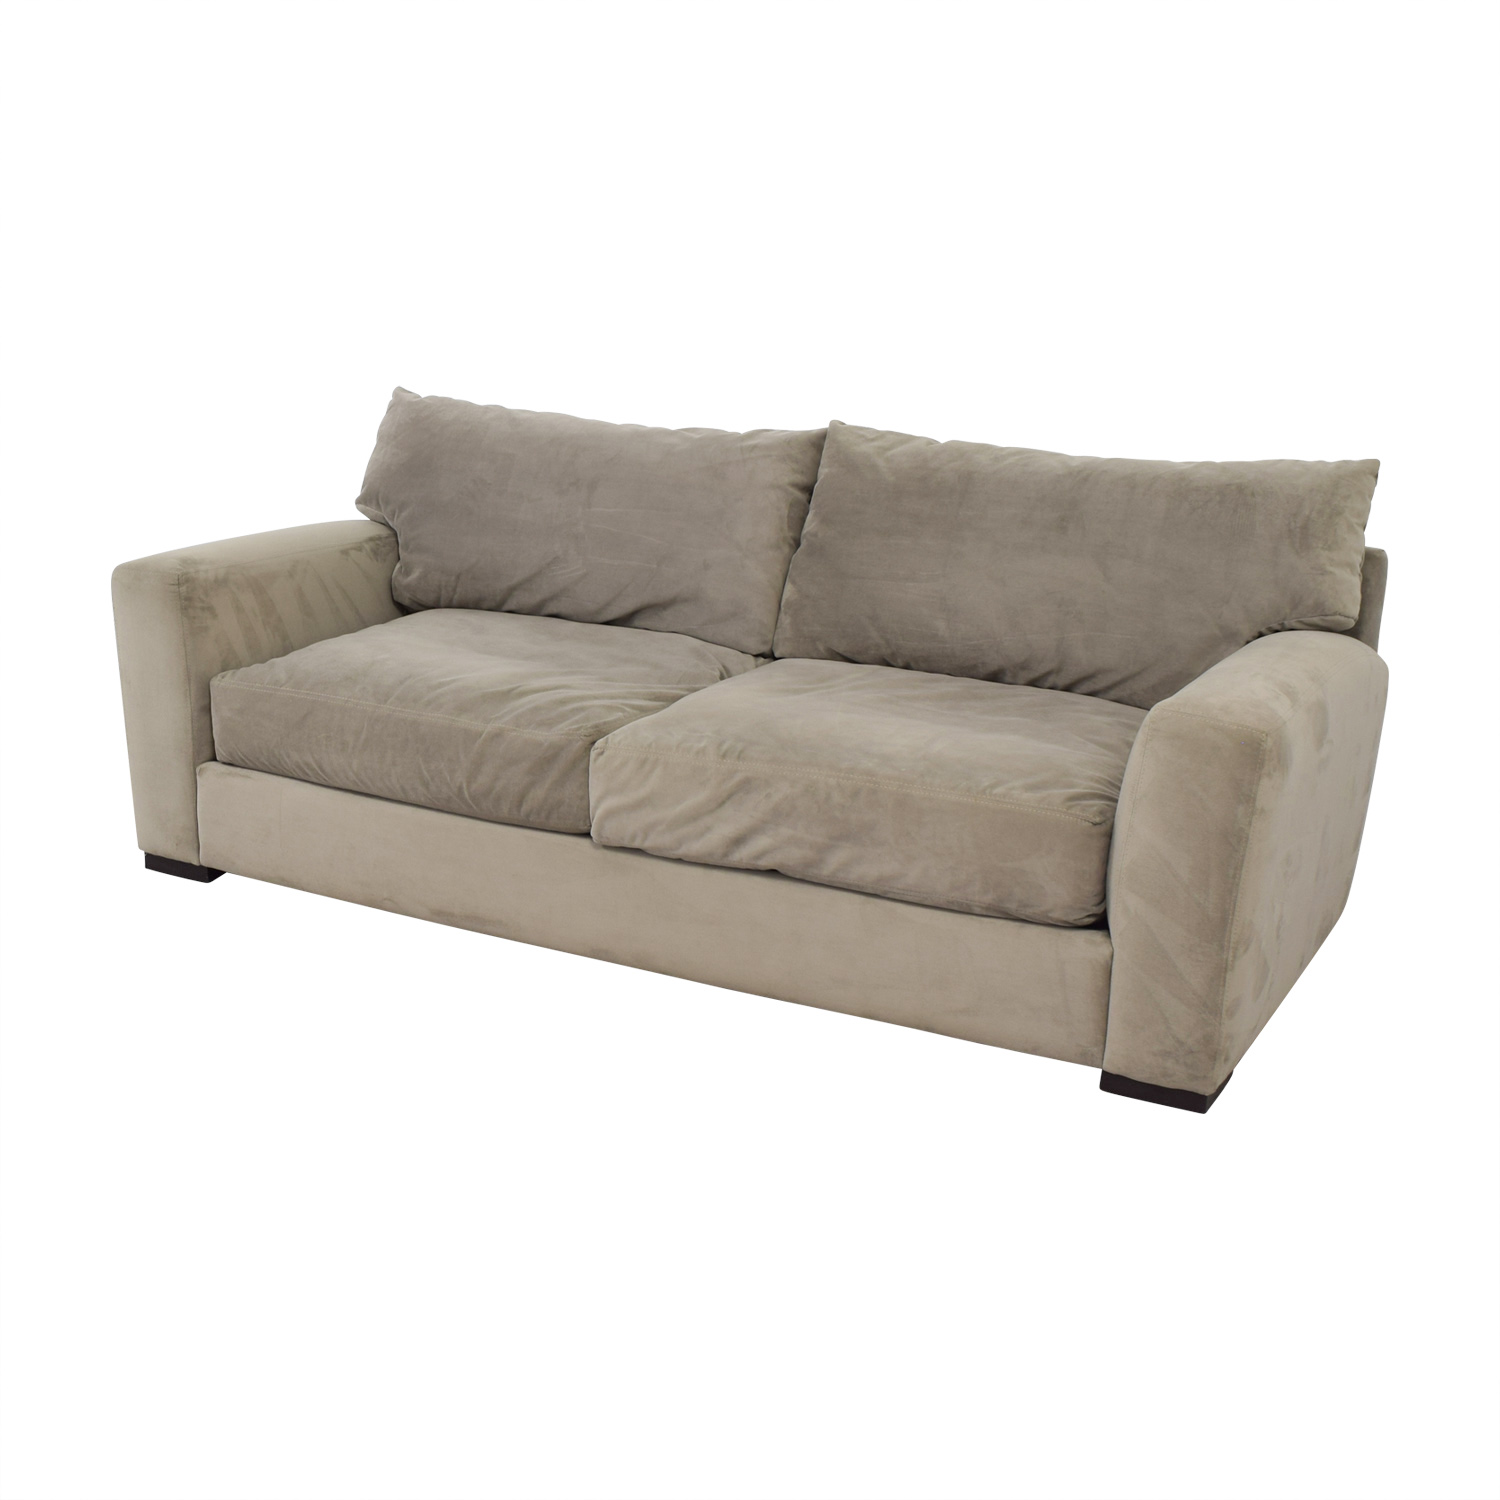 87% OFF - Raymour & Flanigan Raymour & Flanigan Grey Carlin Microfiber Sofa  / Sofas